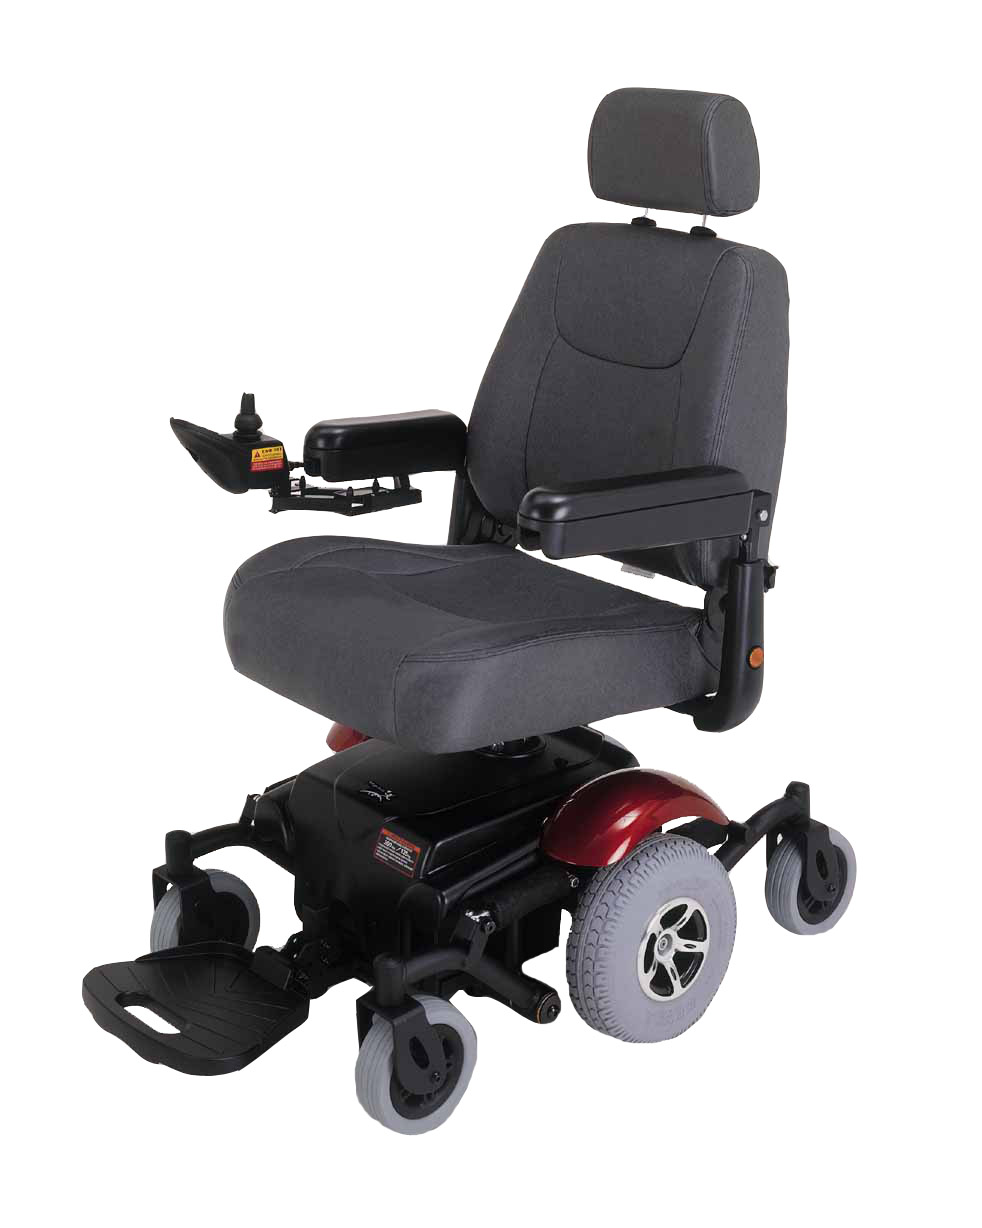 power wheelchair repair advice, pronto power wheel chair, dalton power wheel chairs, power wheelchair